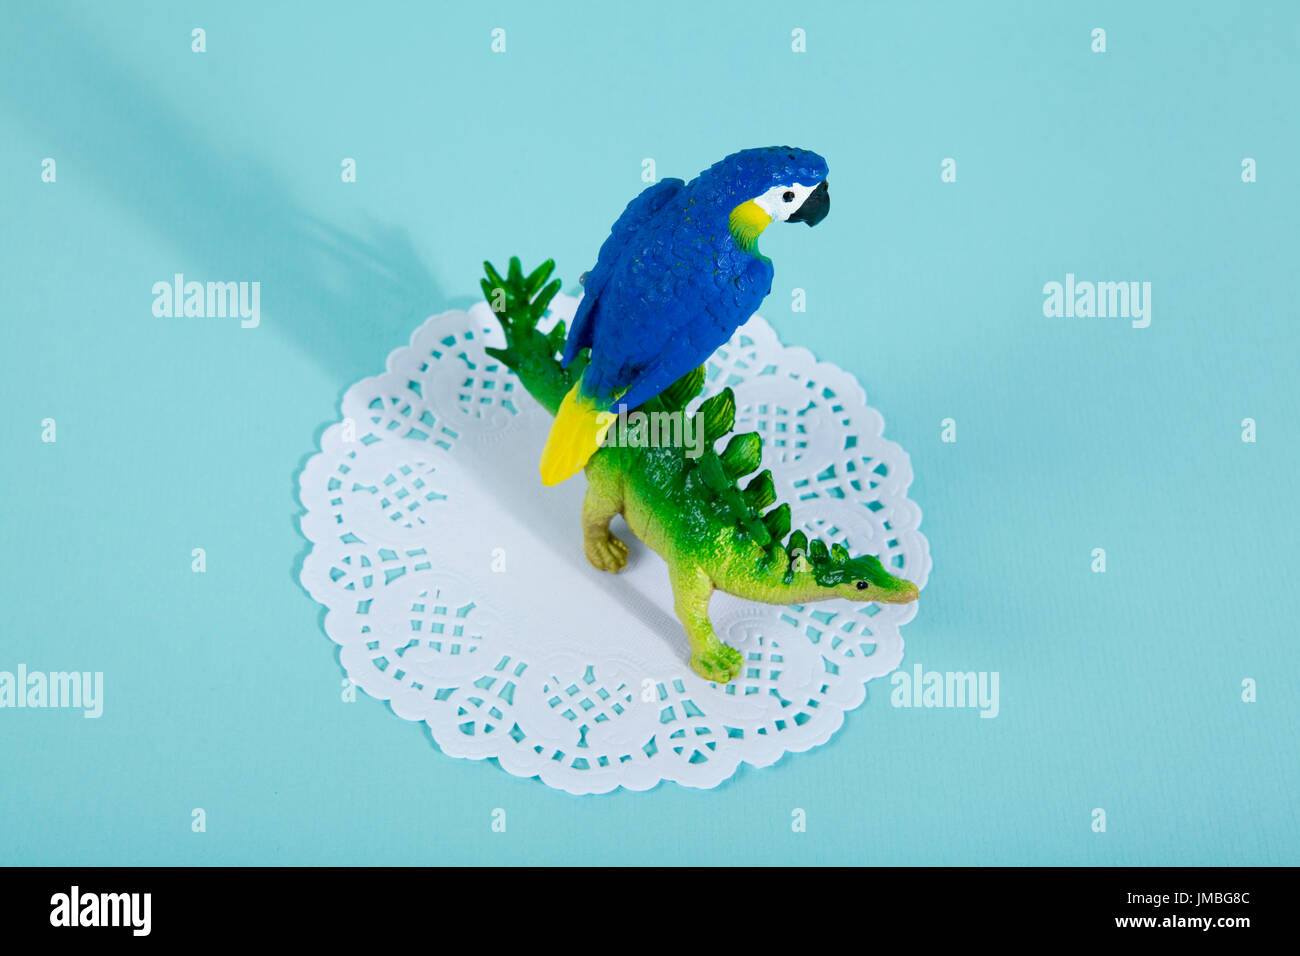 A dinosaur stegosaurus and a blue parrot on a white lace paper doily with a vibrant turquoise background. Minimal - Stock Image